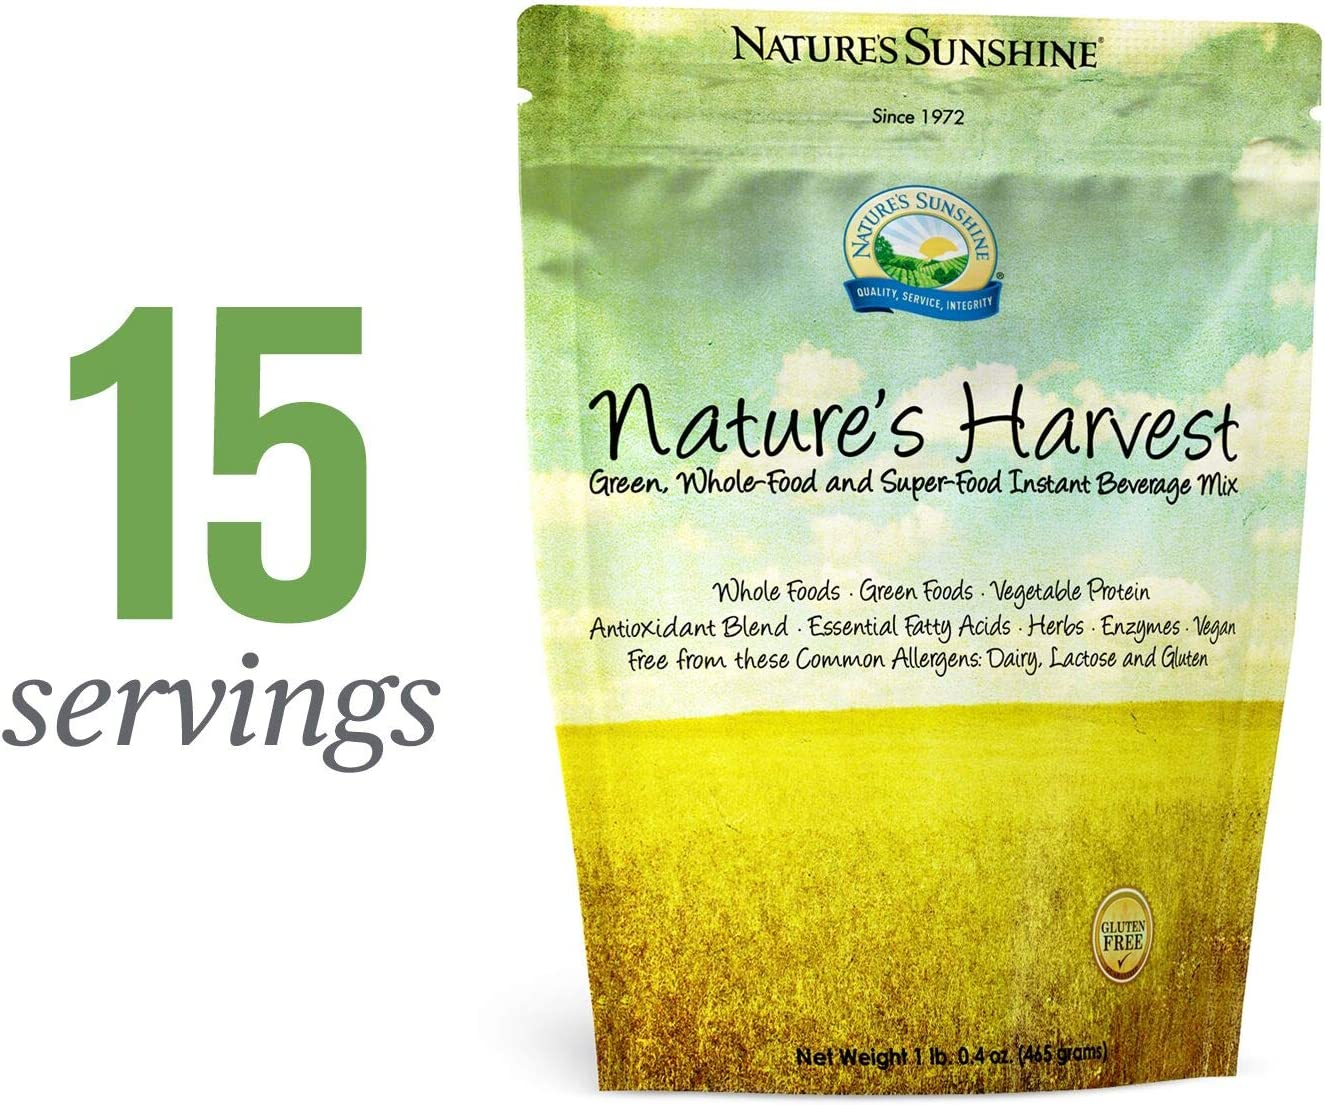 Nature s Sunshine Harvest Supplement, 465 Grams, 15 Servings Provides 13 Grams of Vegetable Protein Plus 75 of the Daily Value for 18 Essential Nutrients per Serving